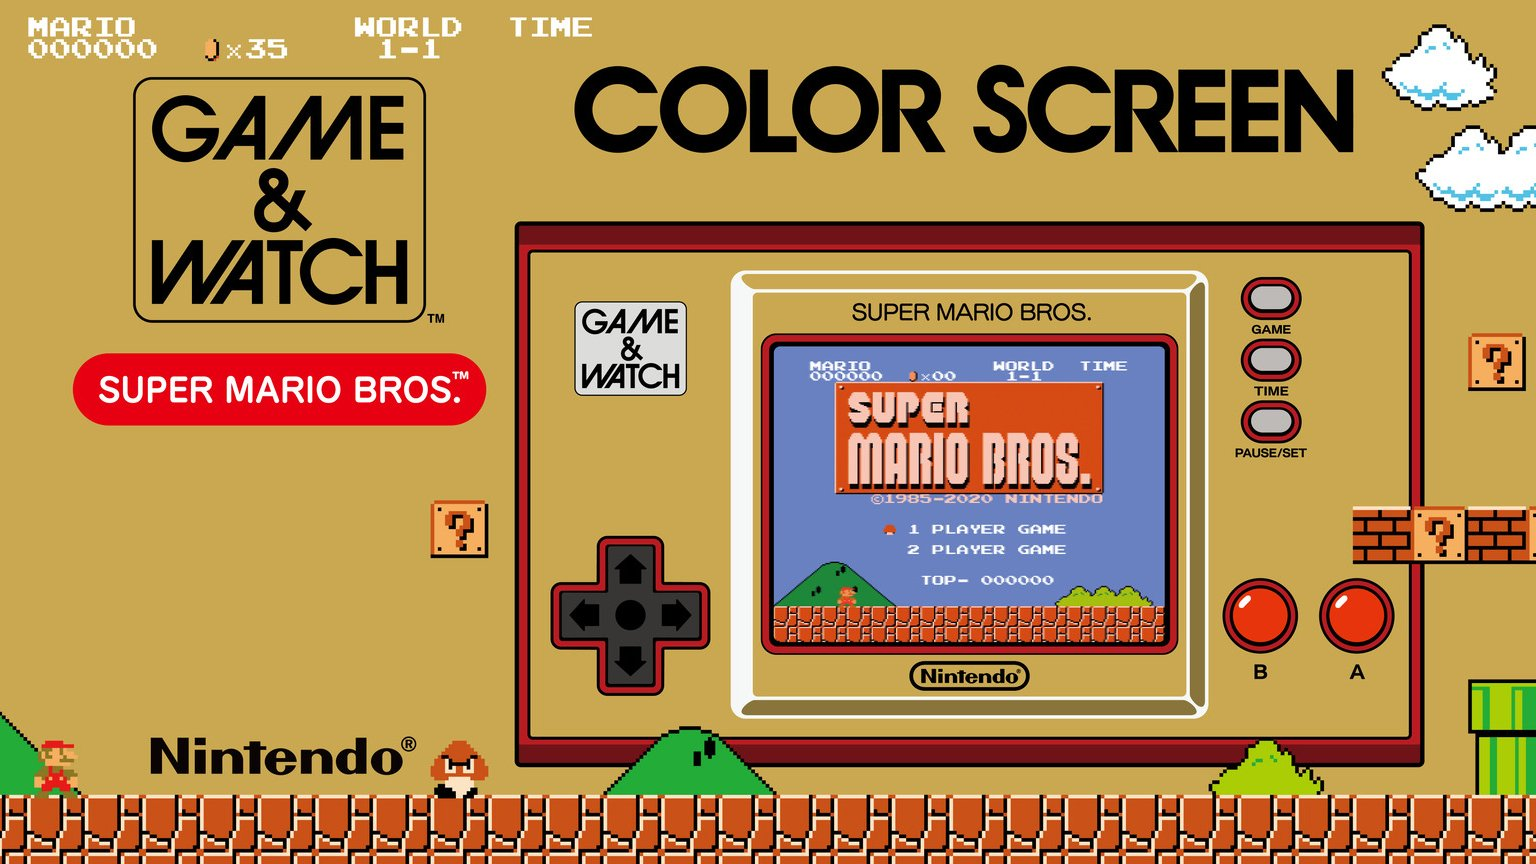 Game & Watch: Super Mario Bros